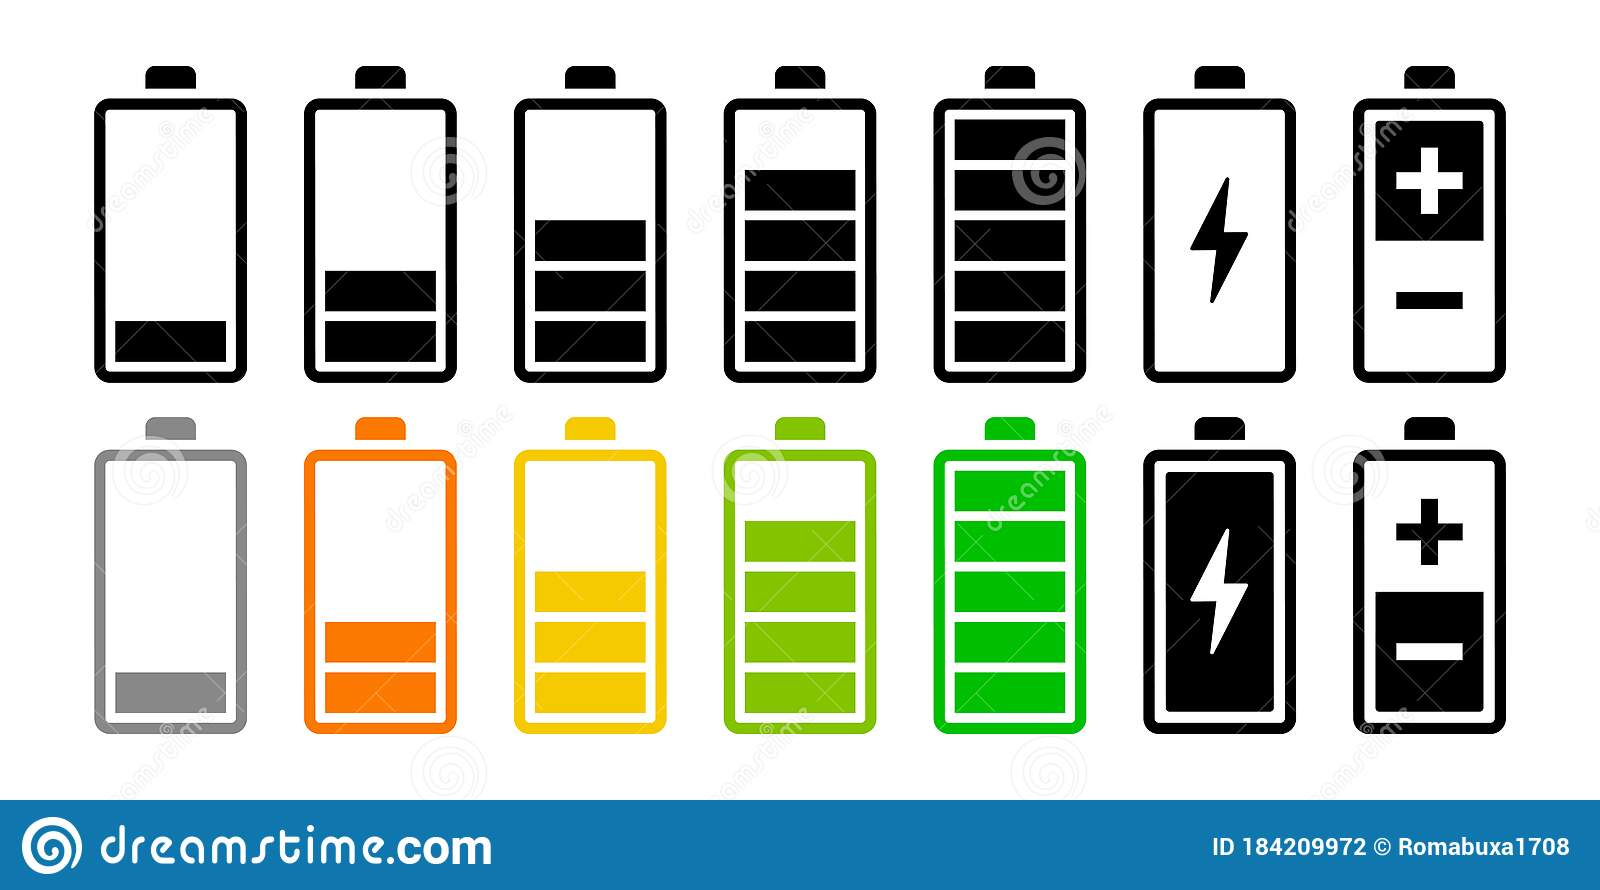 battery icon collection battery vector sign symbol set charge indicanor collection level battery energy concept vector stock vector illustration of fuel icon 184209972 battery icon collection battery vector sign symbol set charge indicanor collection level battery energy concept vector stock vector illustration of fuel icon 184209972